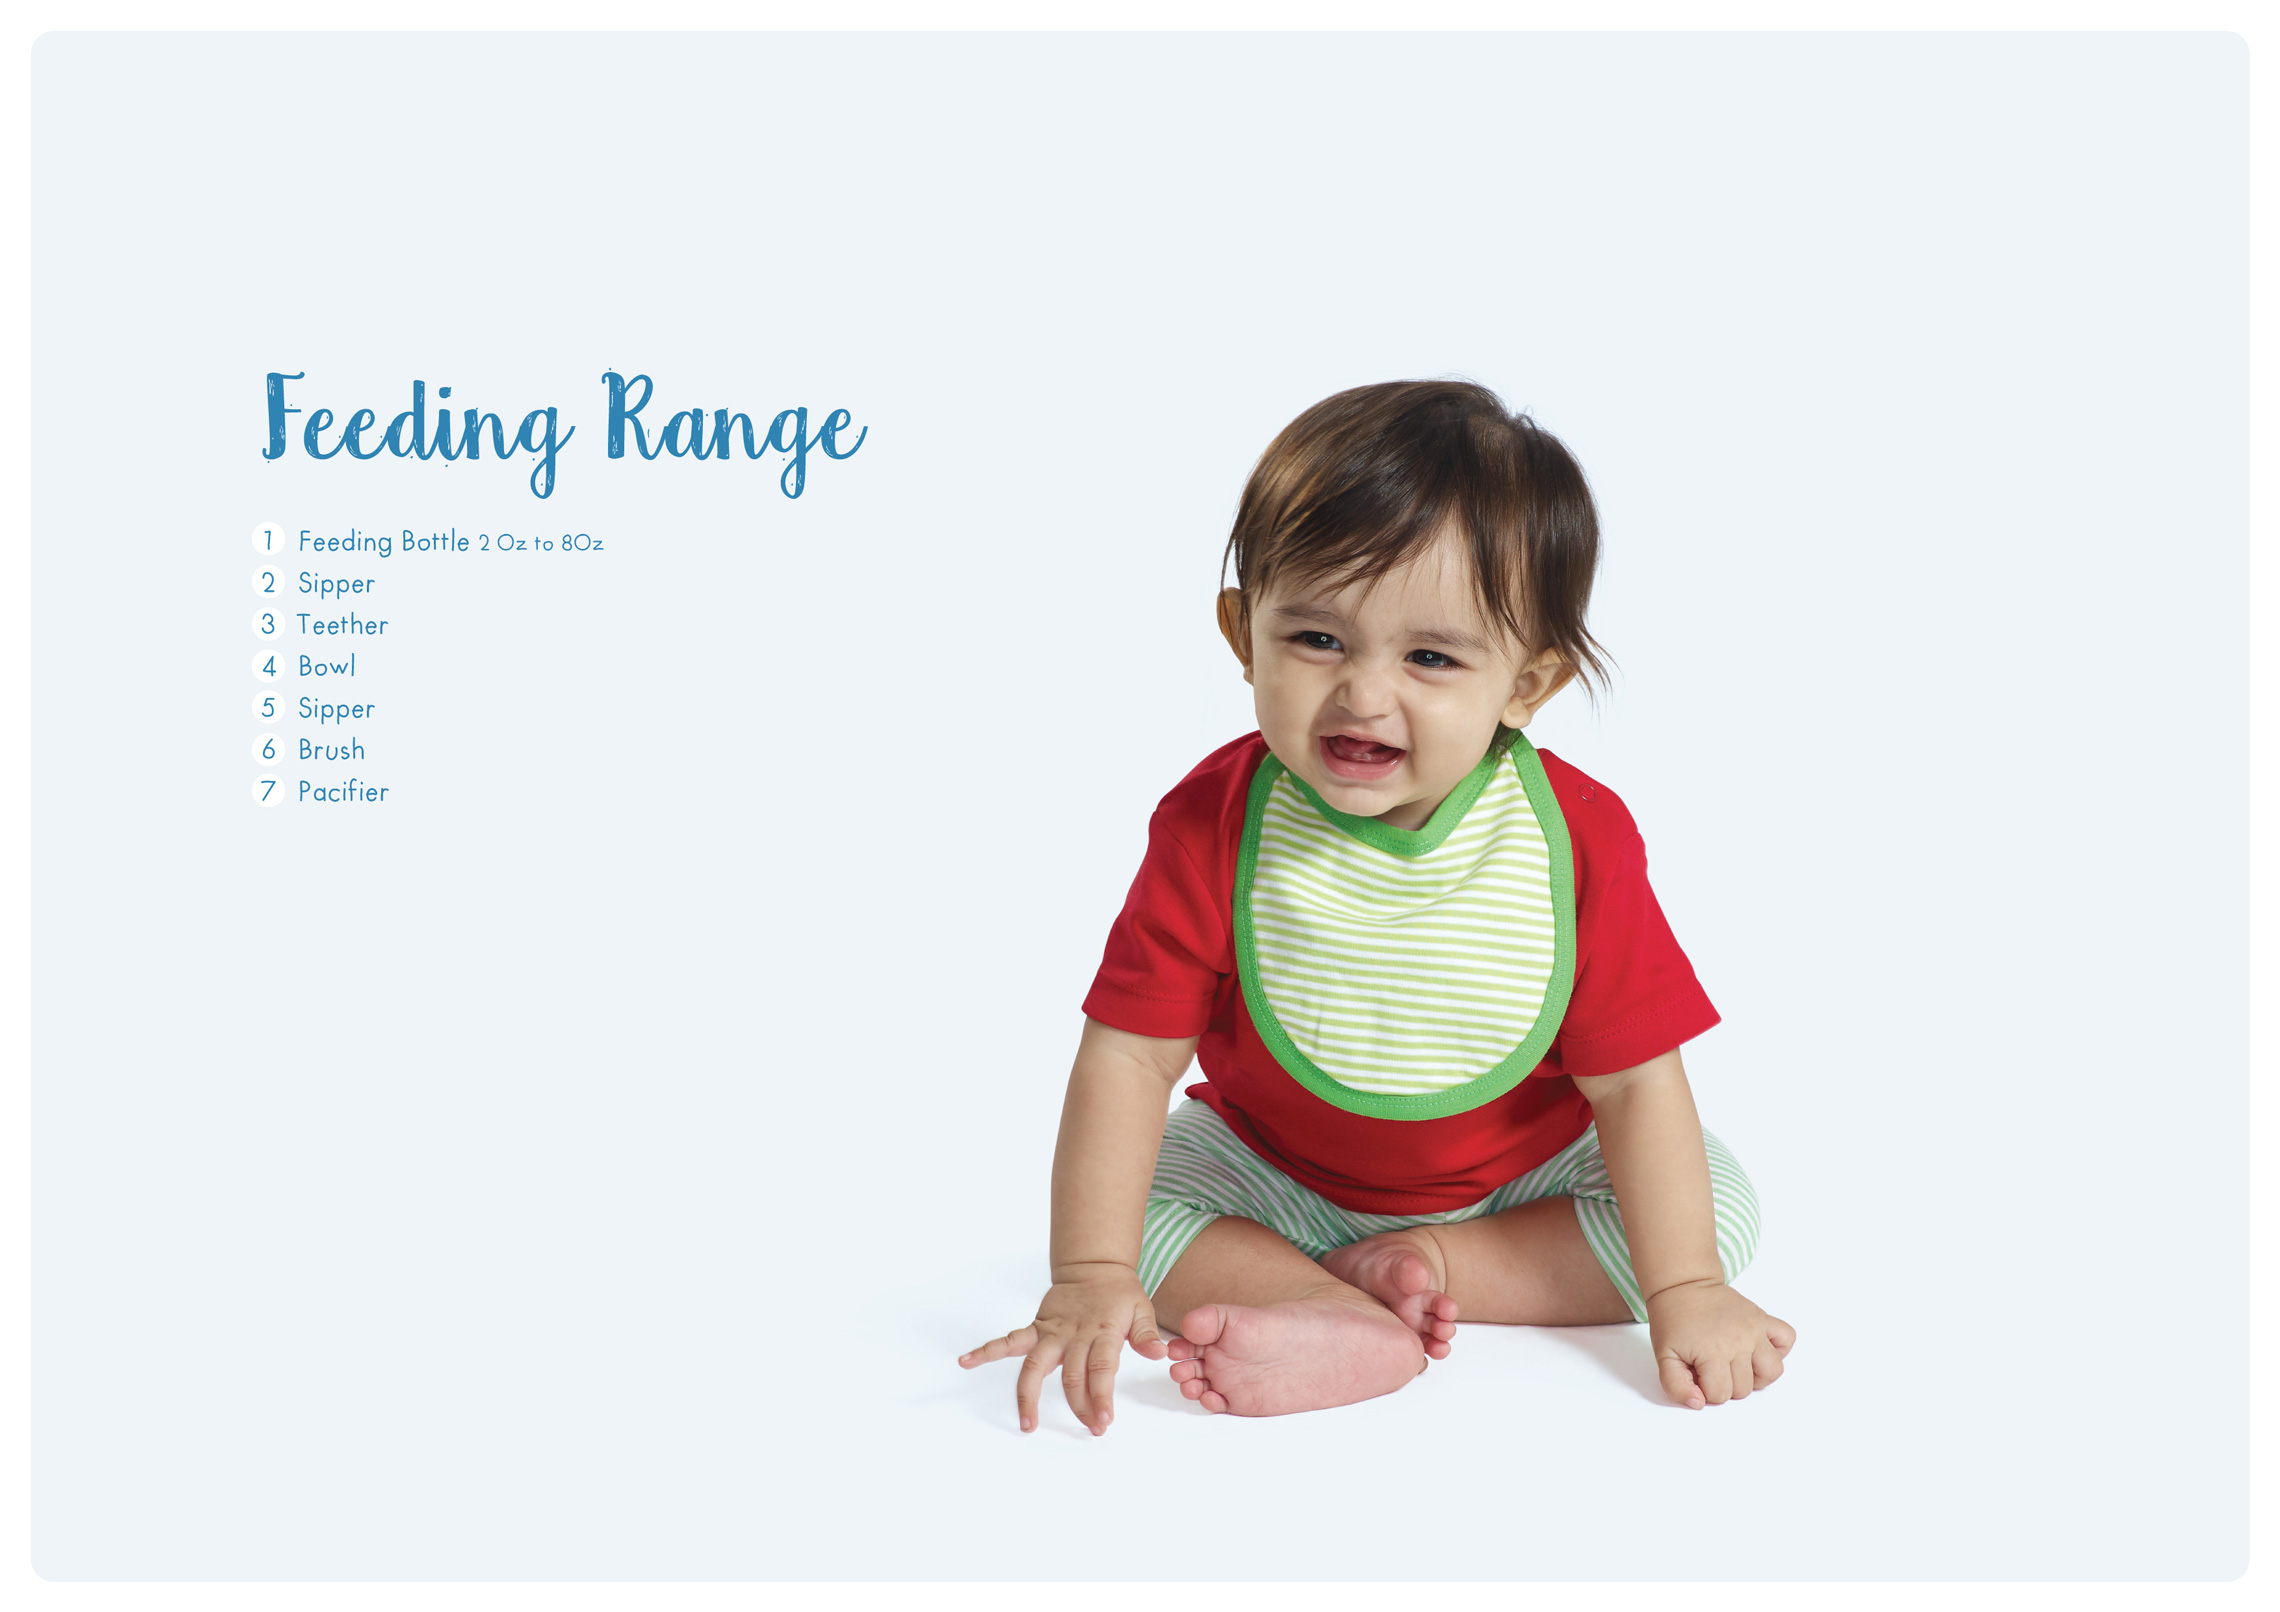 FBB Infant's range catalogue